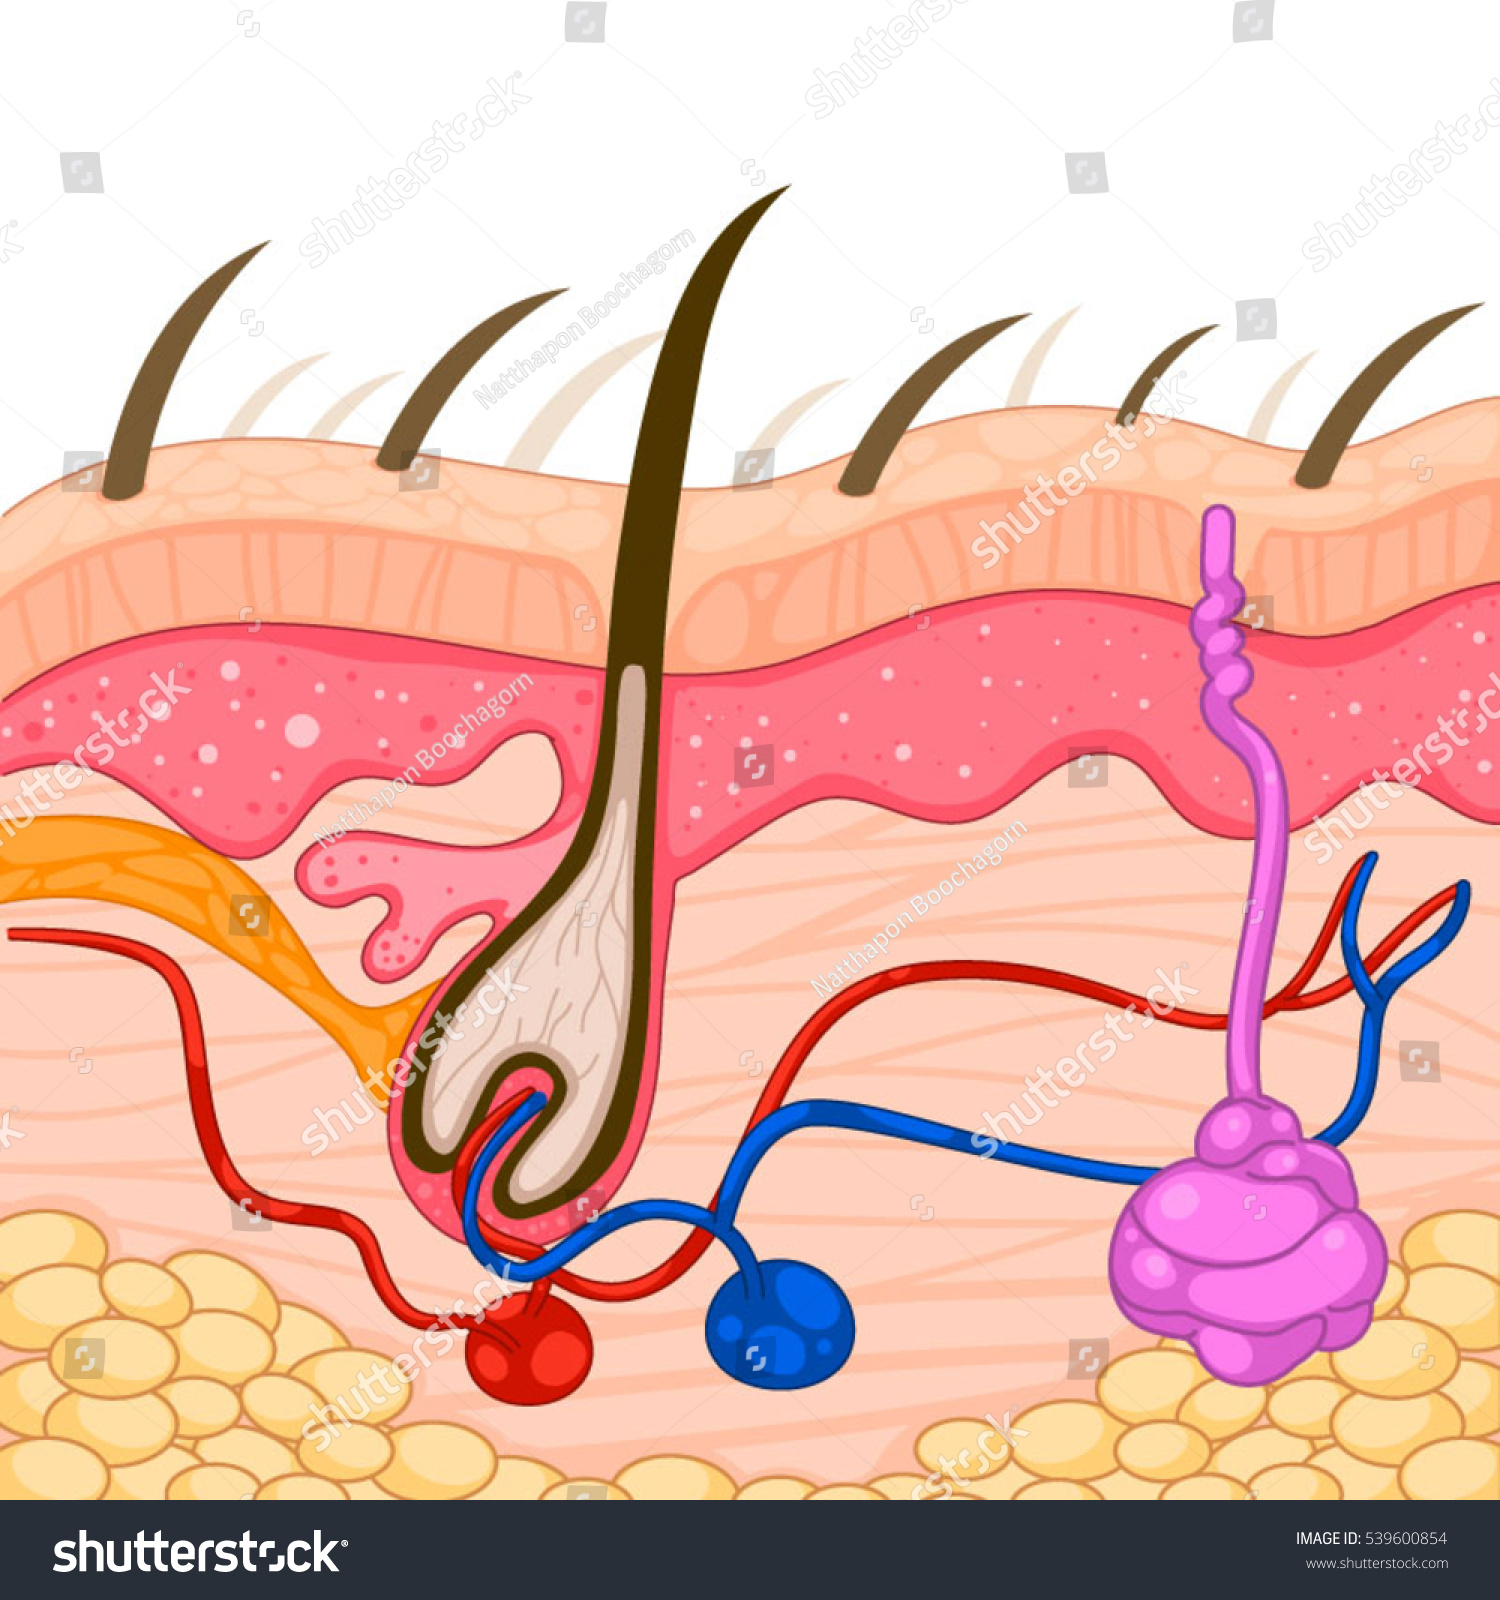 Skin layer diagram stock vector 539600854 shutterstock skin layer diagram pooptronica Image collections